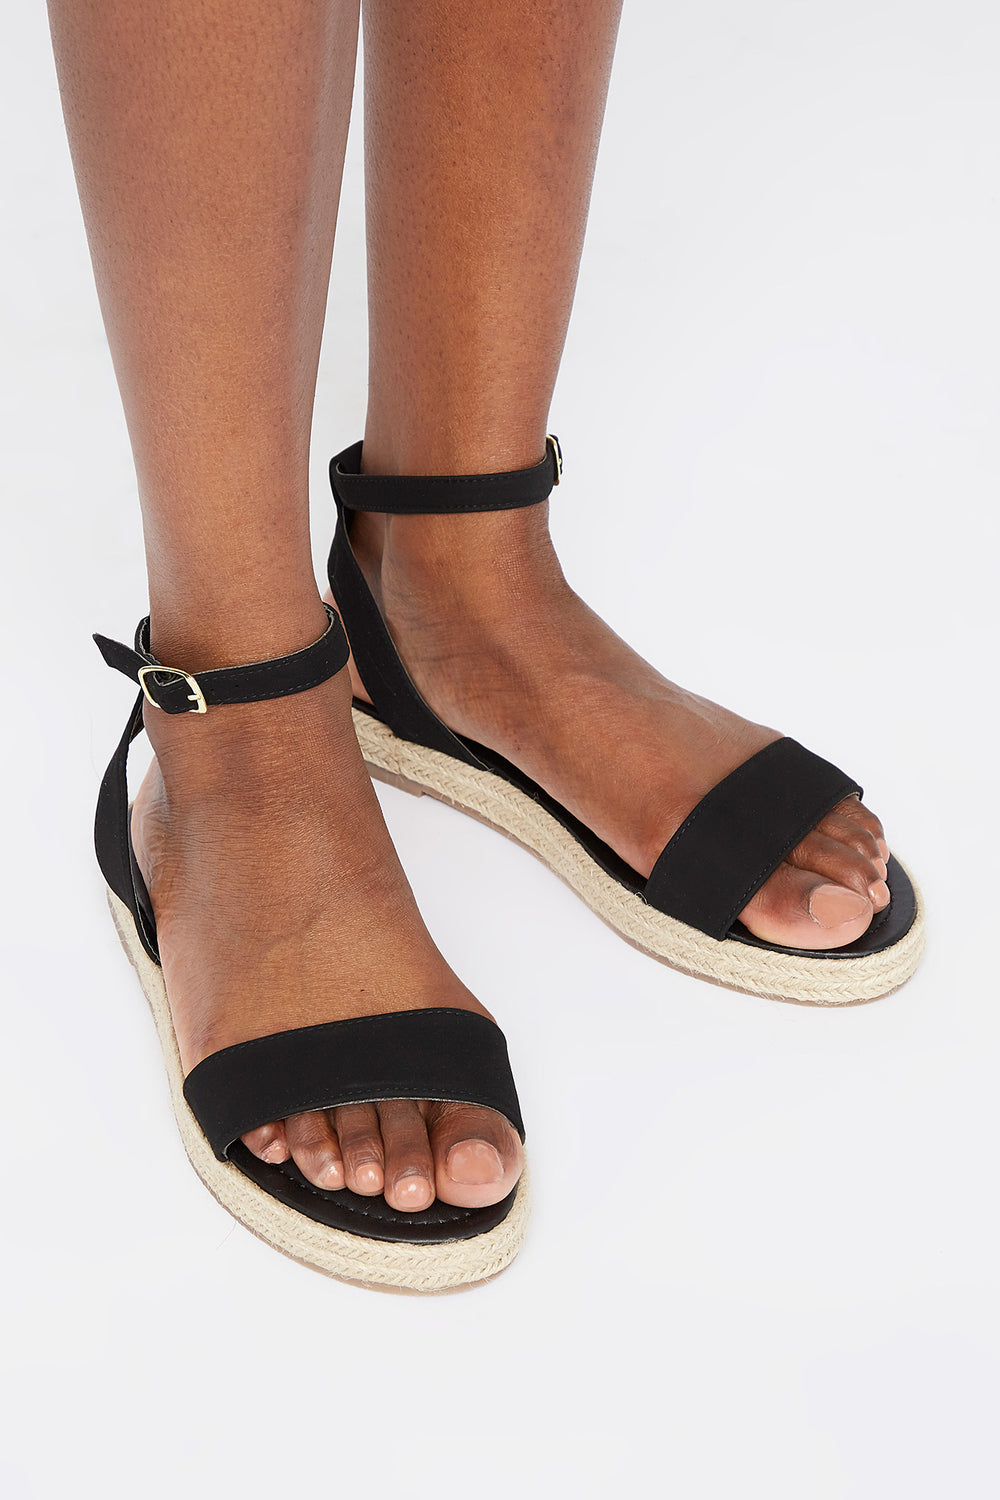 Buckle Band Espadrille Sandal Black